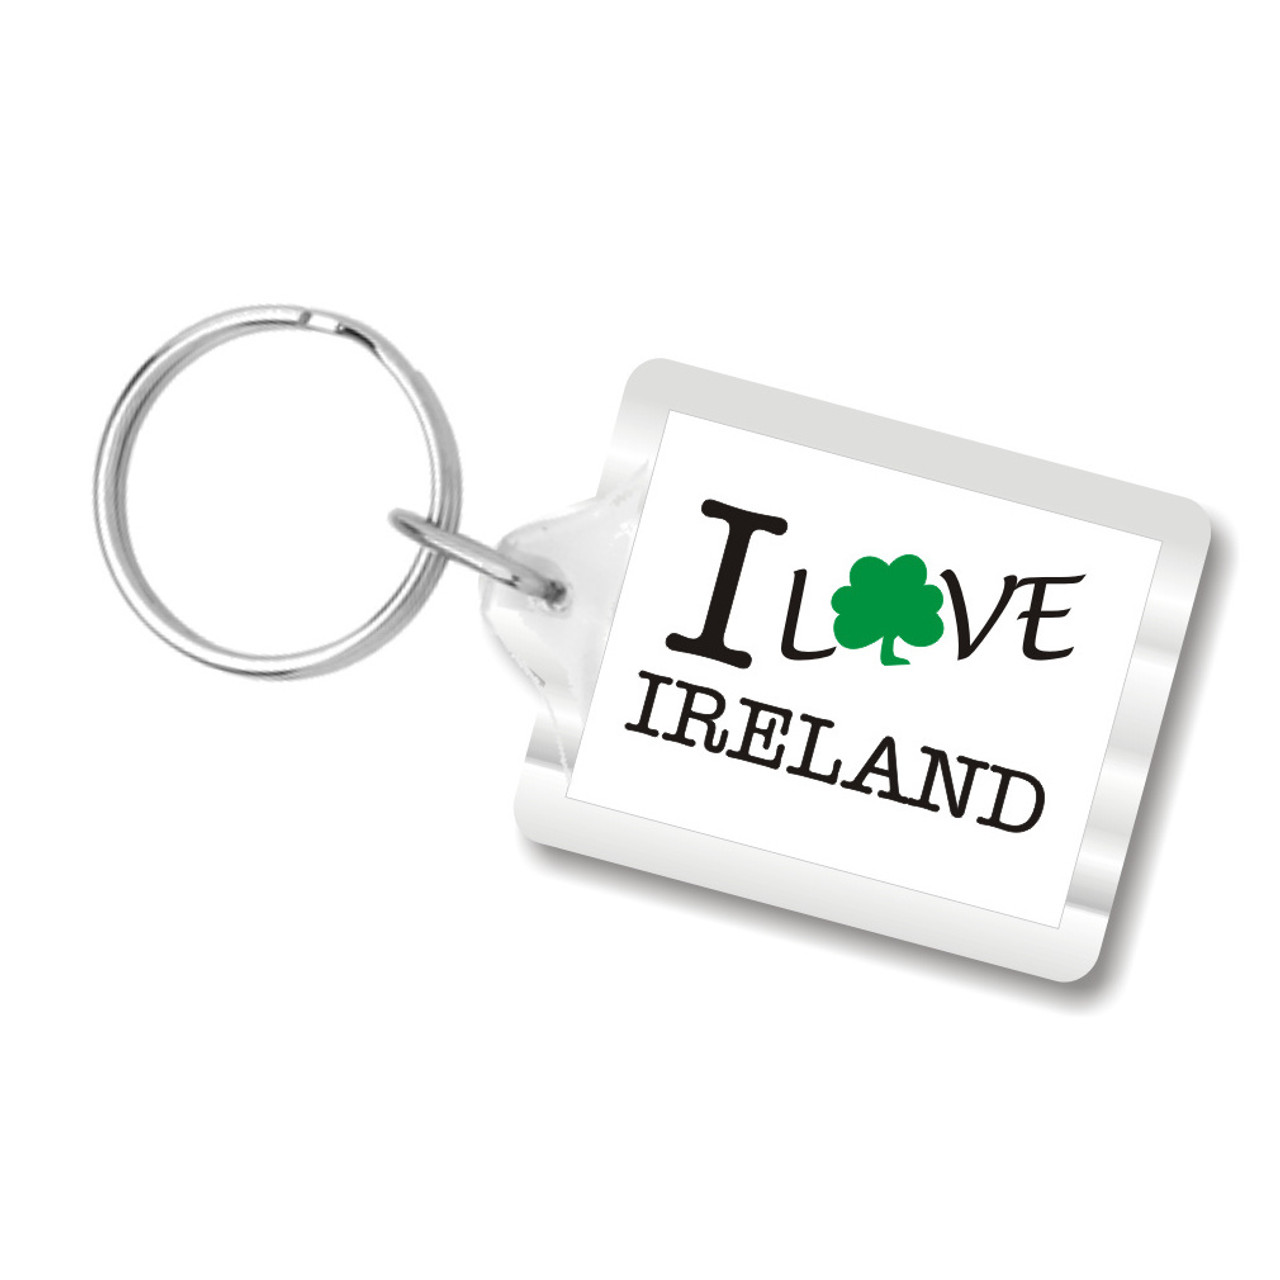 I Shamrock Ireland Plastic Key Chain